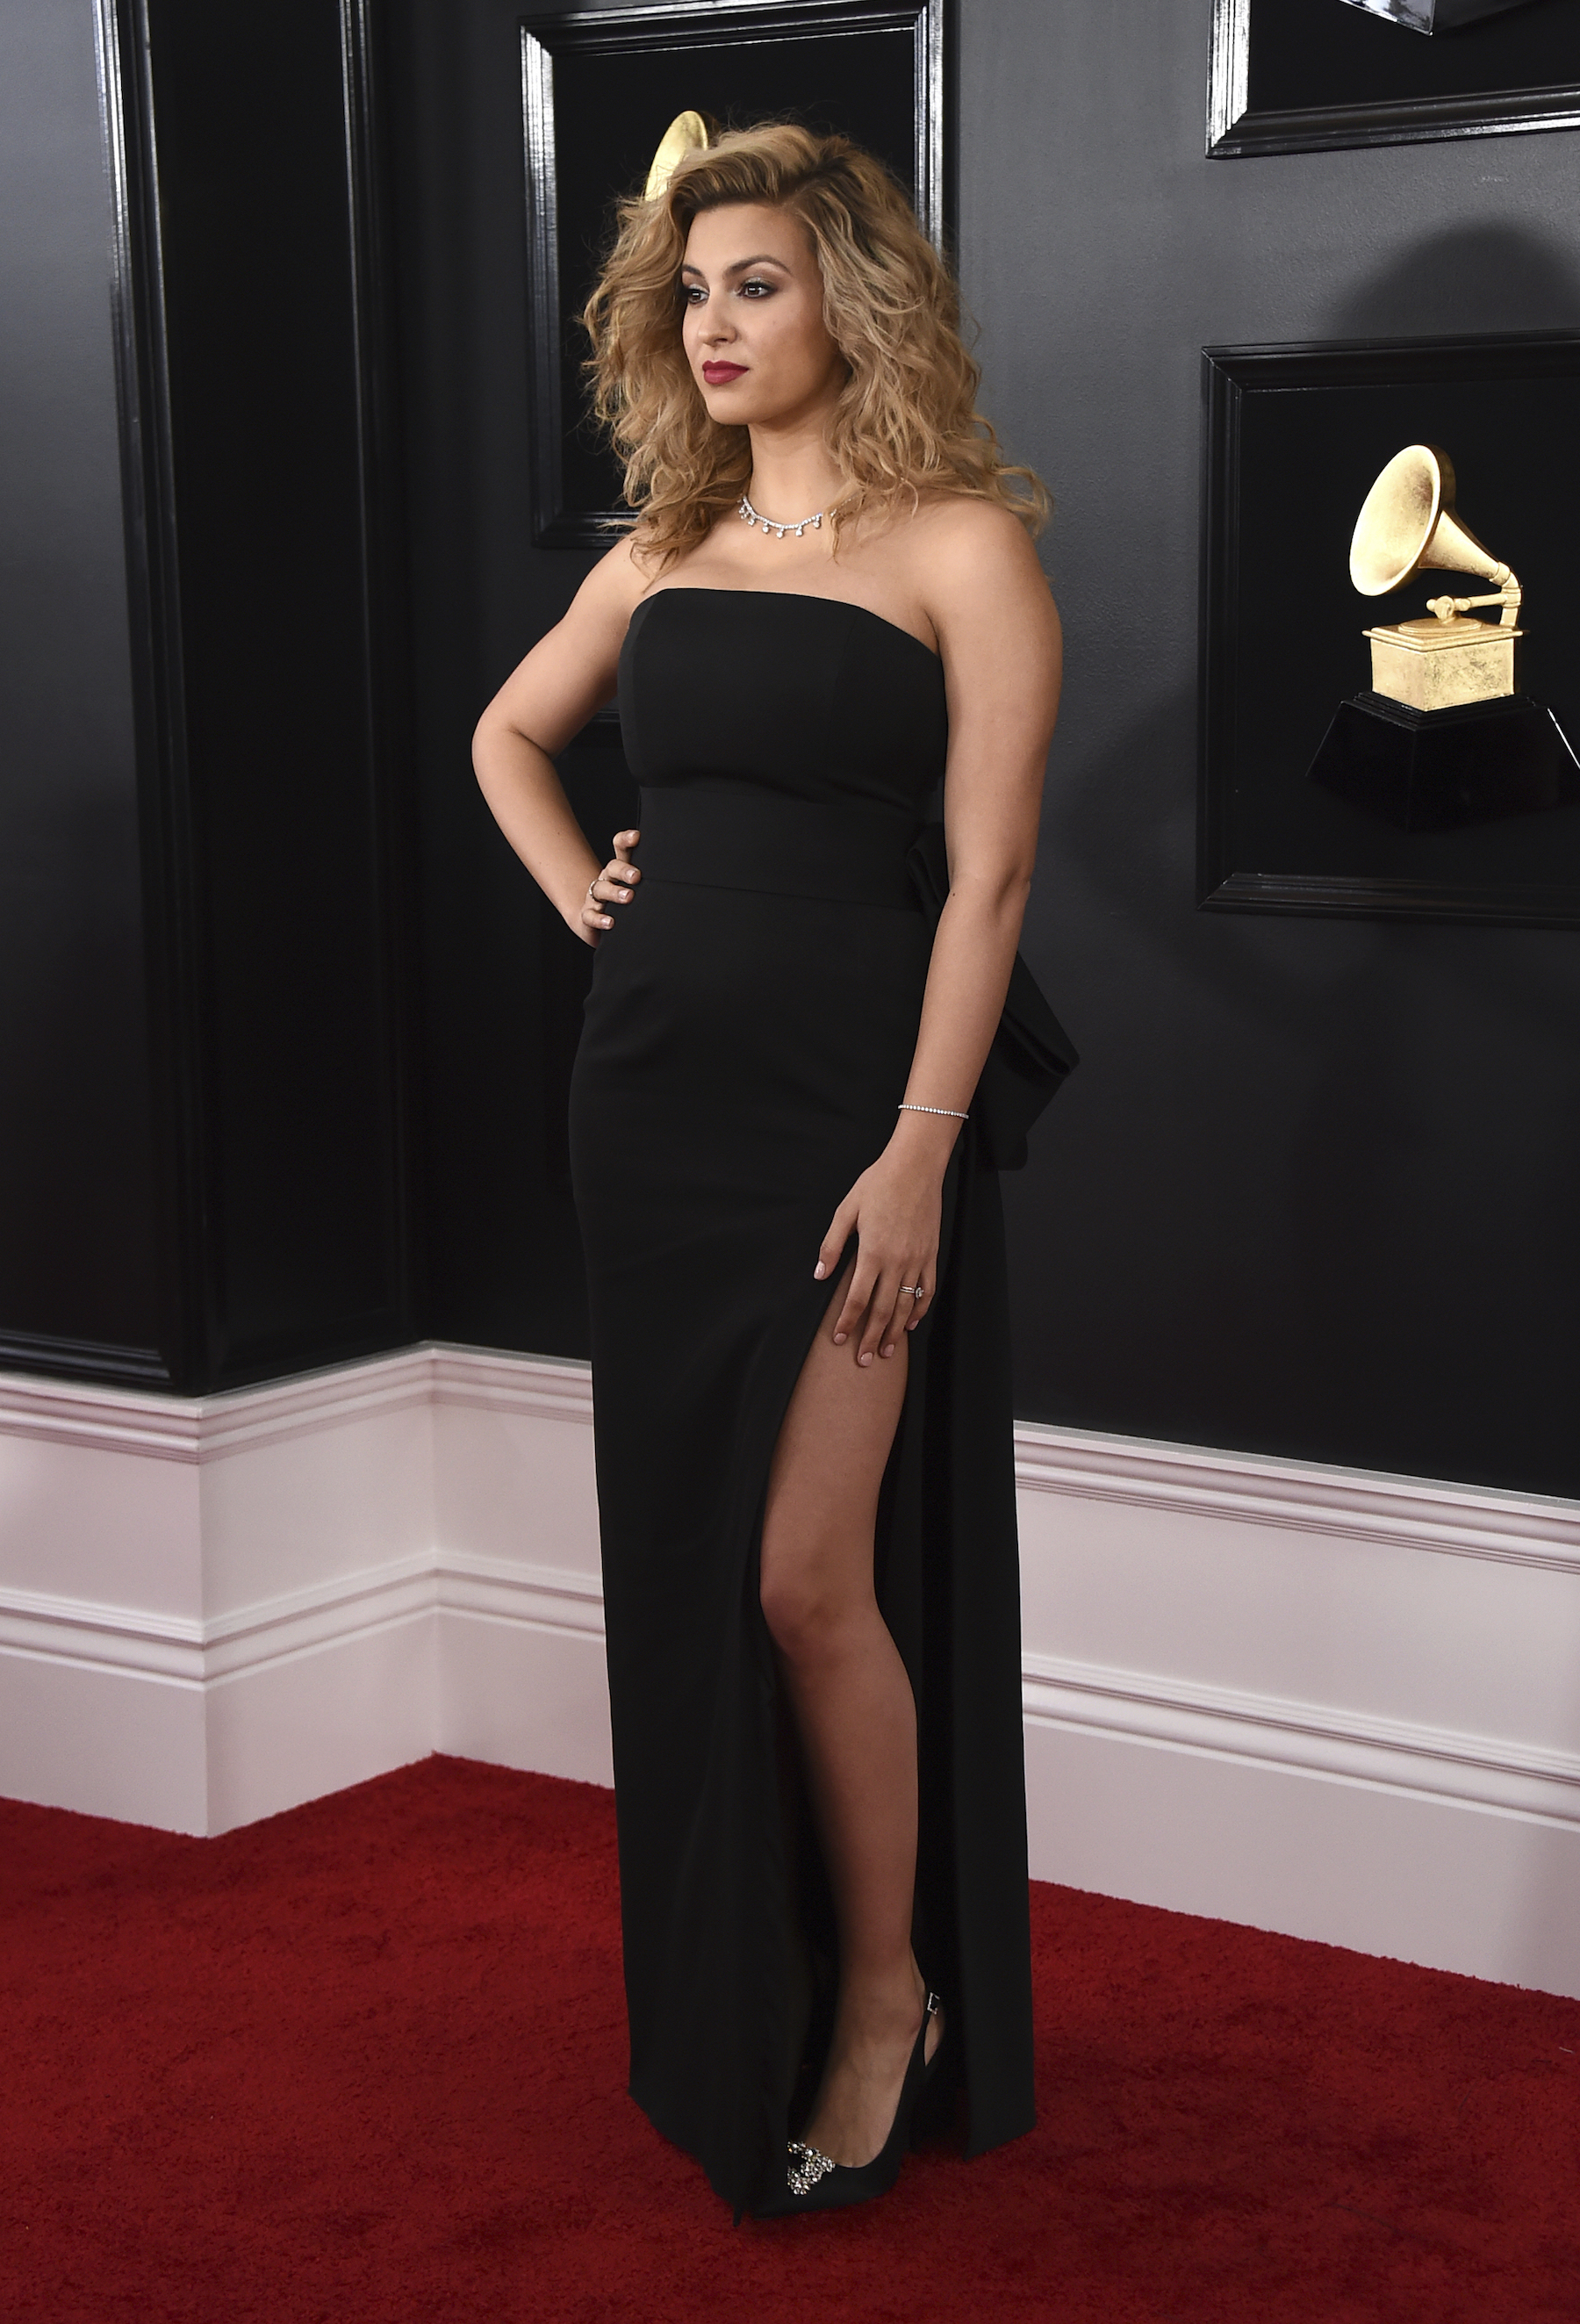 "<div class=""meta image-caption""><div class=""origin-logo origin-image ap""><span>AP</span></div><span class=""caption-text"">Tori Kelly arrives at the 61st annual Grammy Awards at the Staples Center on Sunday, Feb. 10, 2019, in Los Angeles. (Jordan Strauss/Invision/AP)</span></div>"